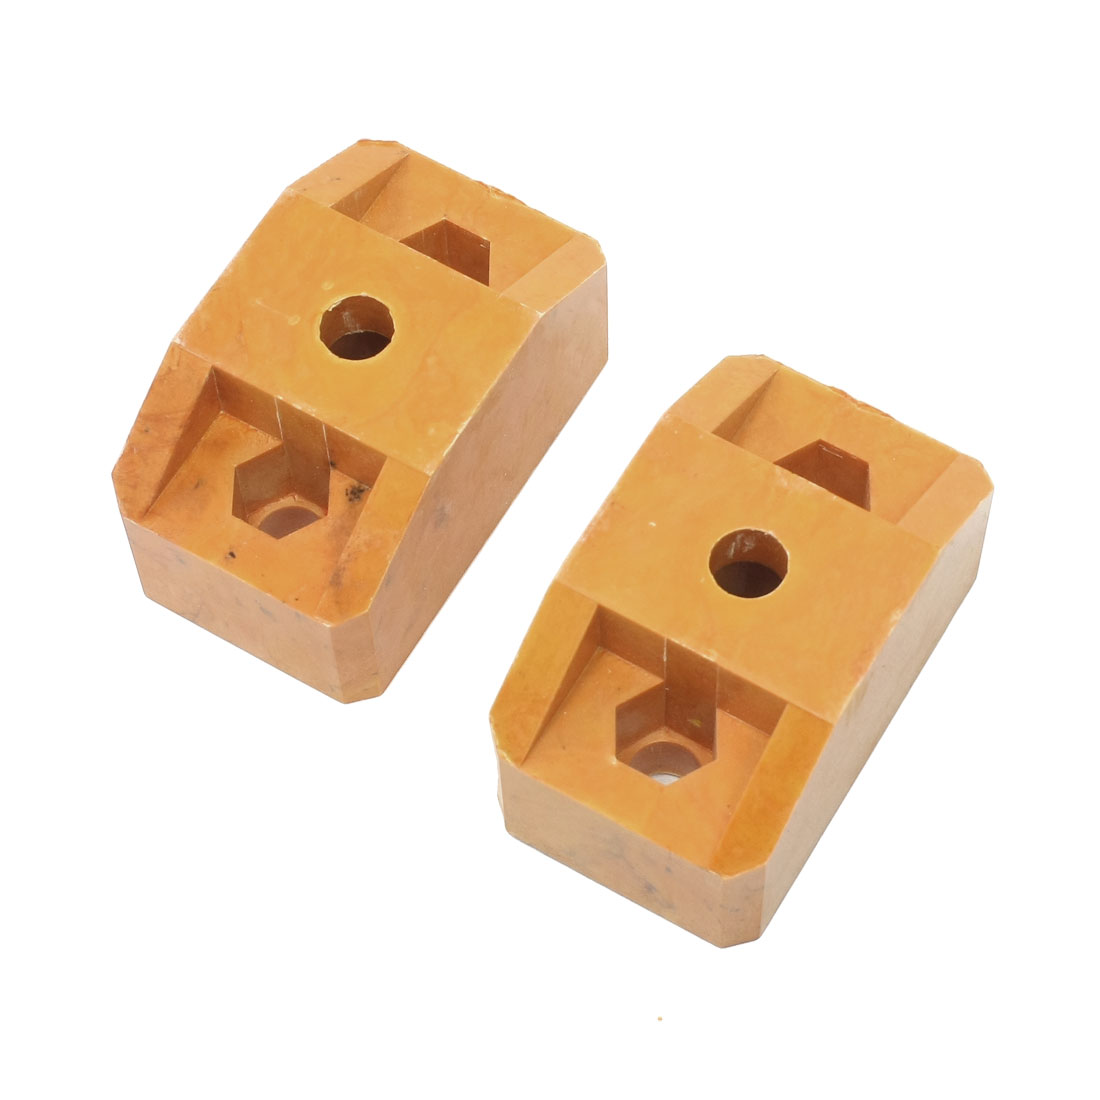 2 Pcs Busbar Insulator Support Block 12mm Diameter Hole 84 x 49 x 44mm